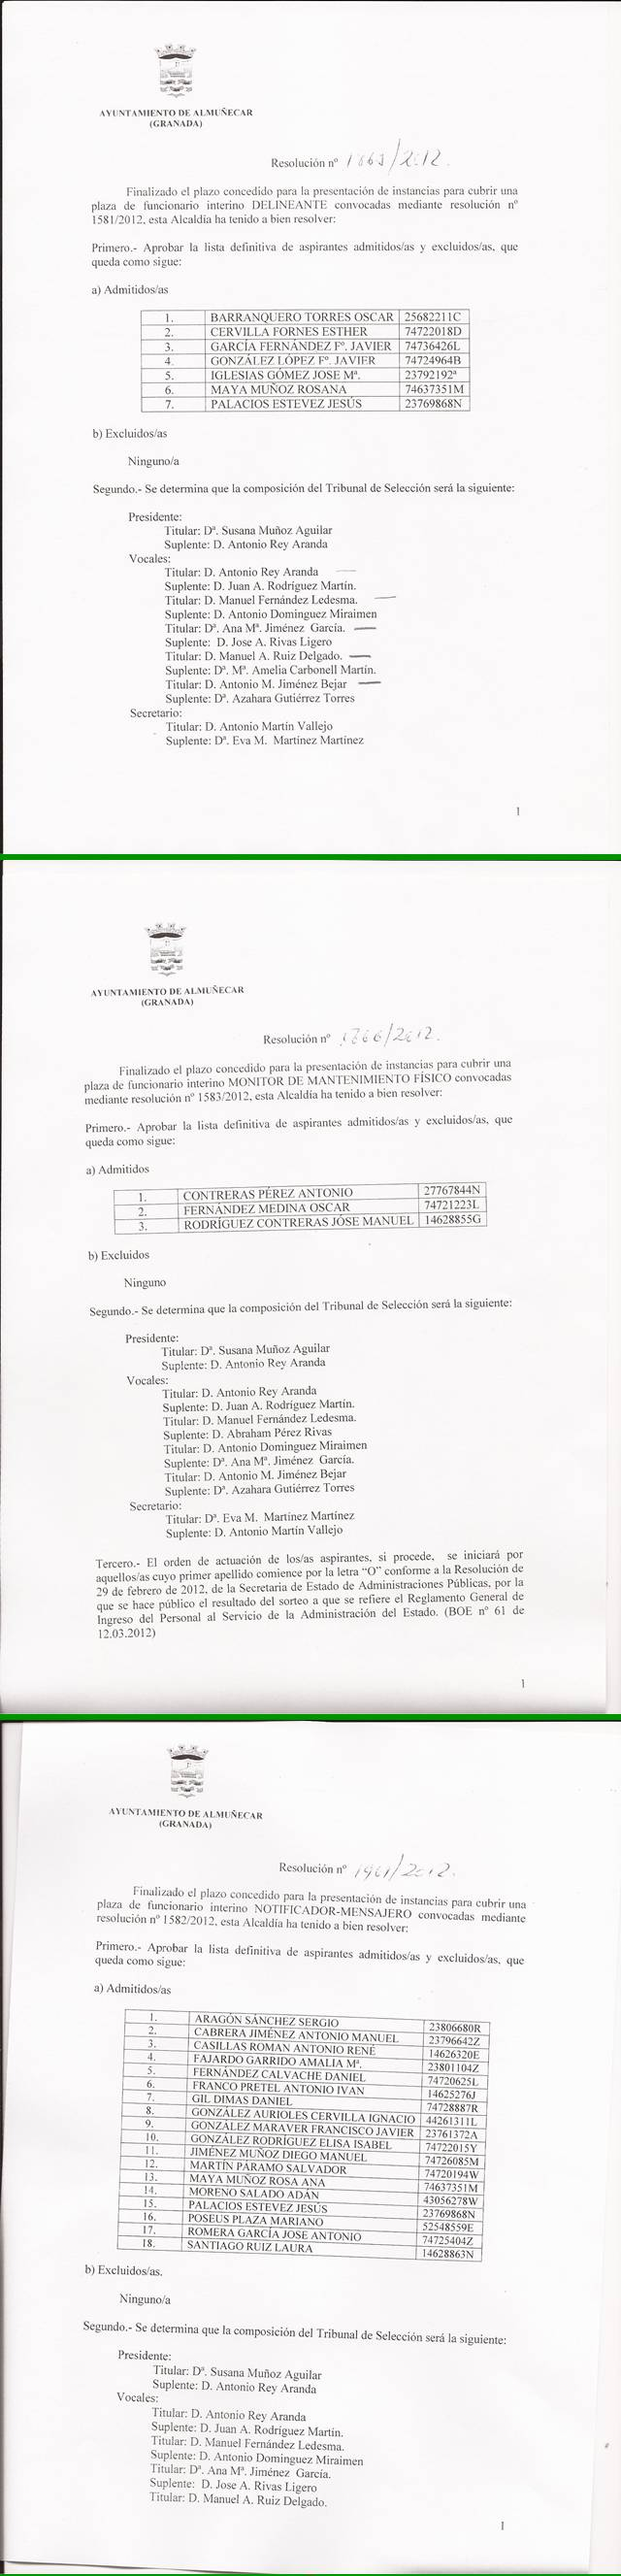 20120515184143-delineantes-notificador-monitor.jpg